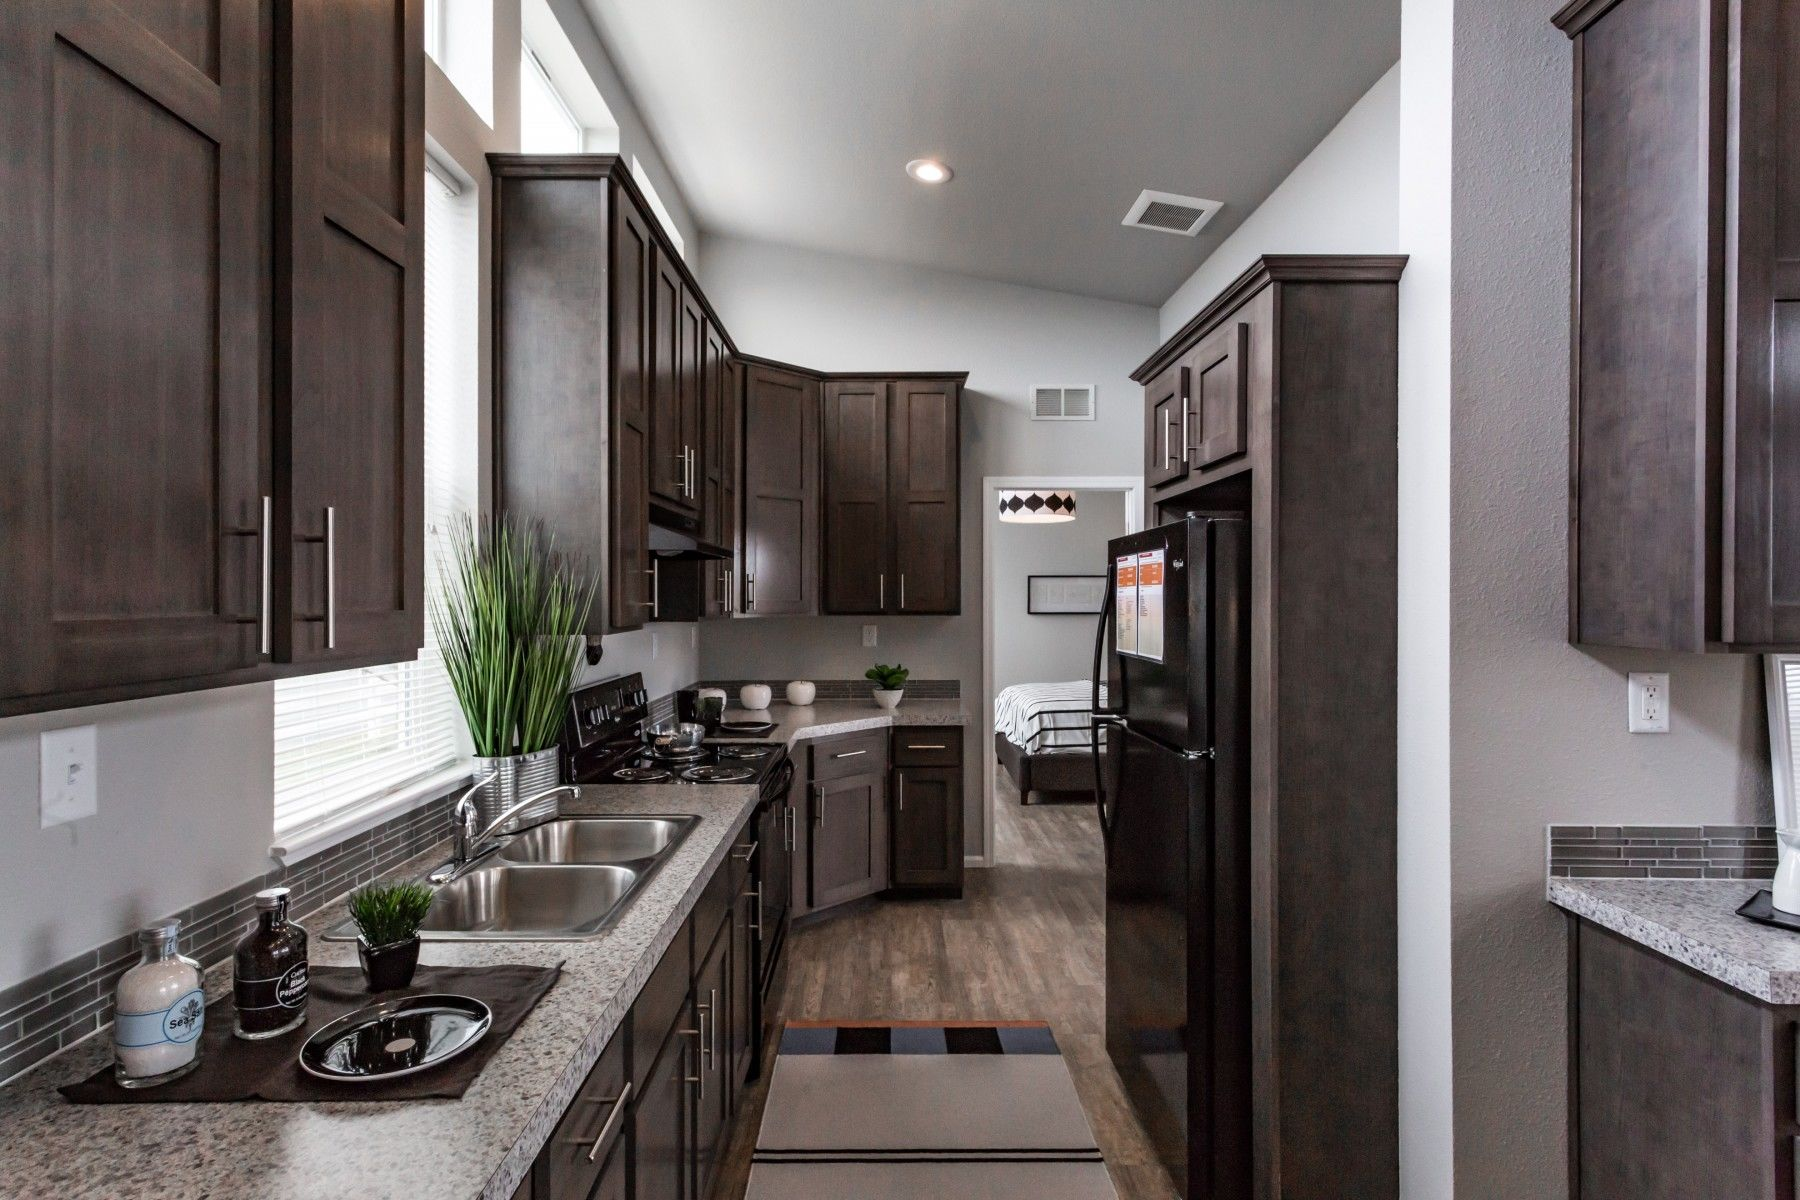 Modular Homes Washington State >> The Loft 2 bed / 2 bath / 1140 sqft affordable home for $55900 | Model HD1576 from Homes Direct